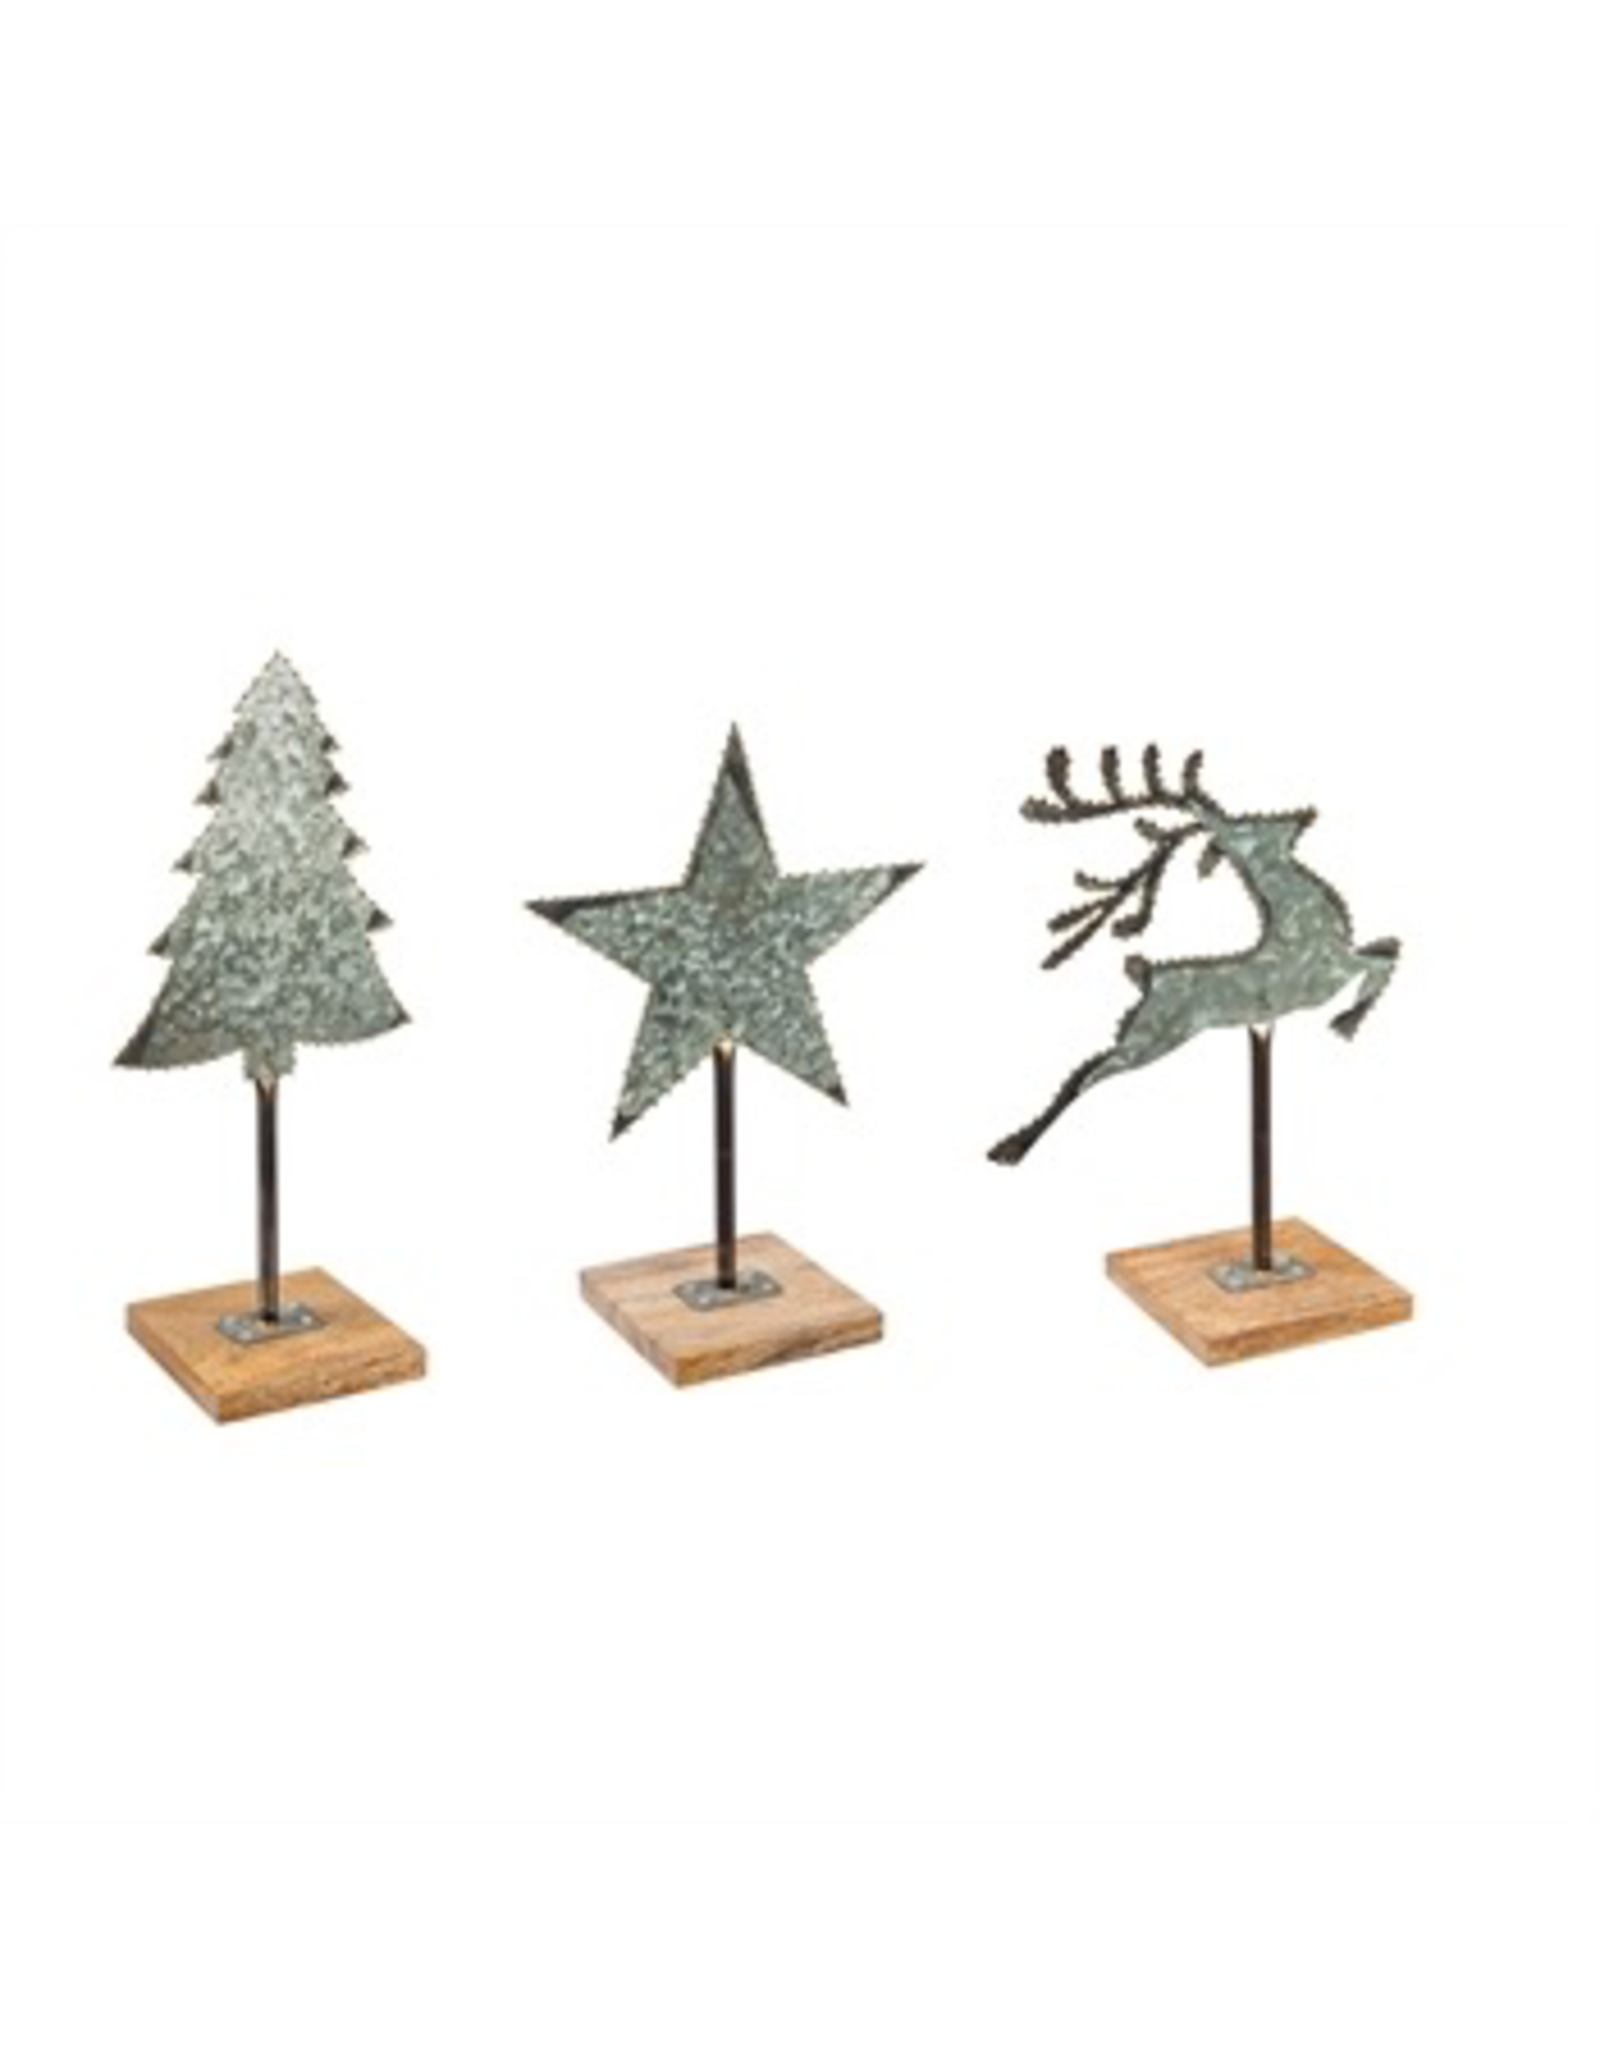 Evergreen Enterprises Galvanized Metal Christmas Tabletop Decor With Wood Base Miche Designs And Gifts